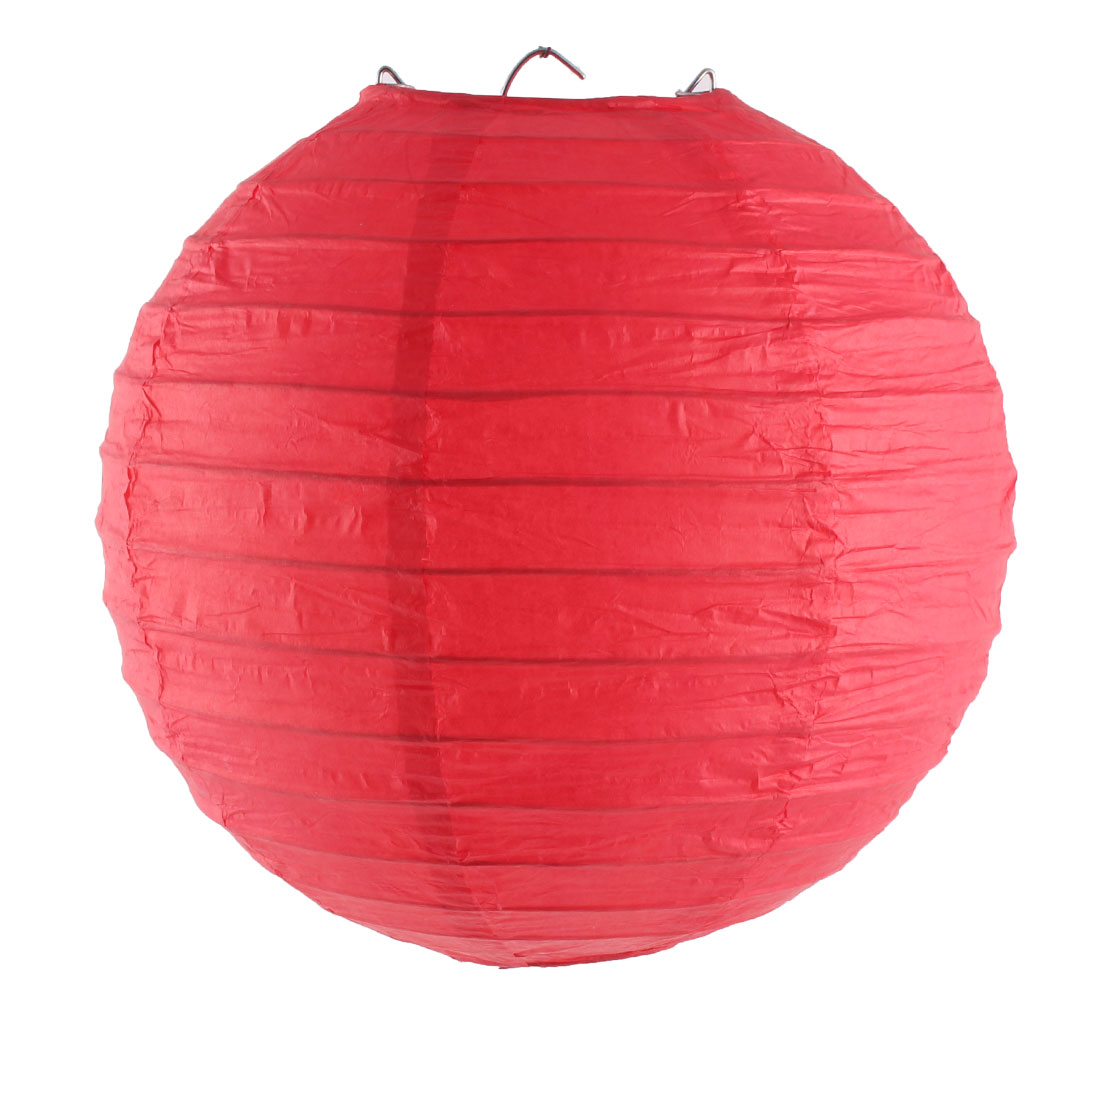 Unique Bargains Christmas Paper Handmade Lantern String Light Decoration Red 8 Inches